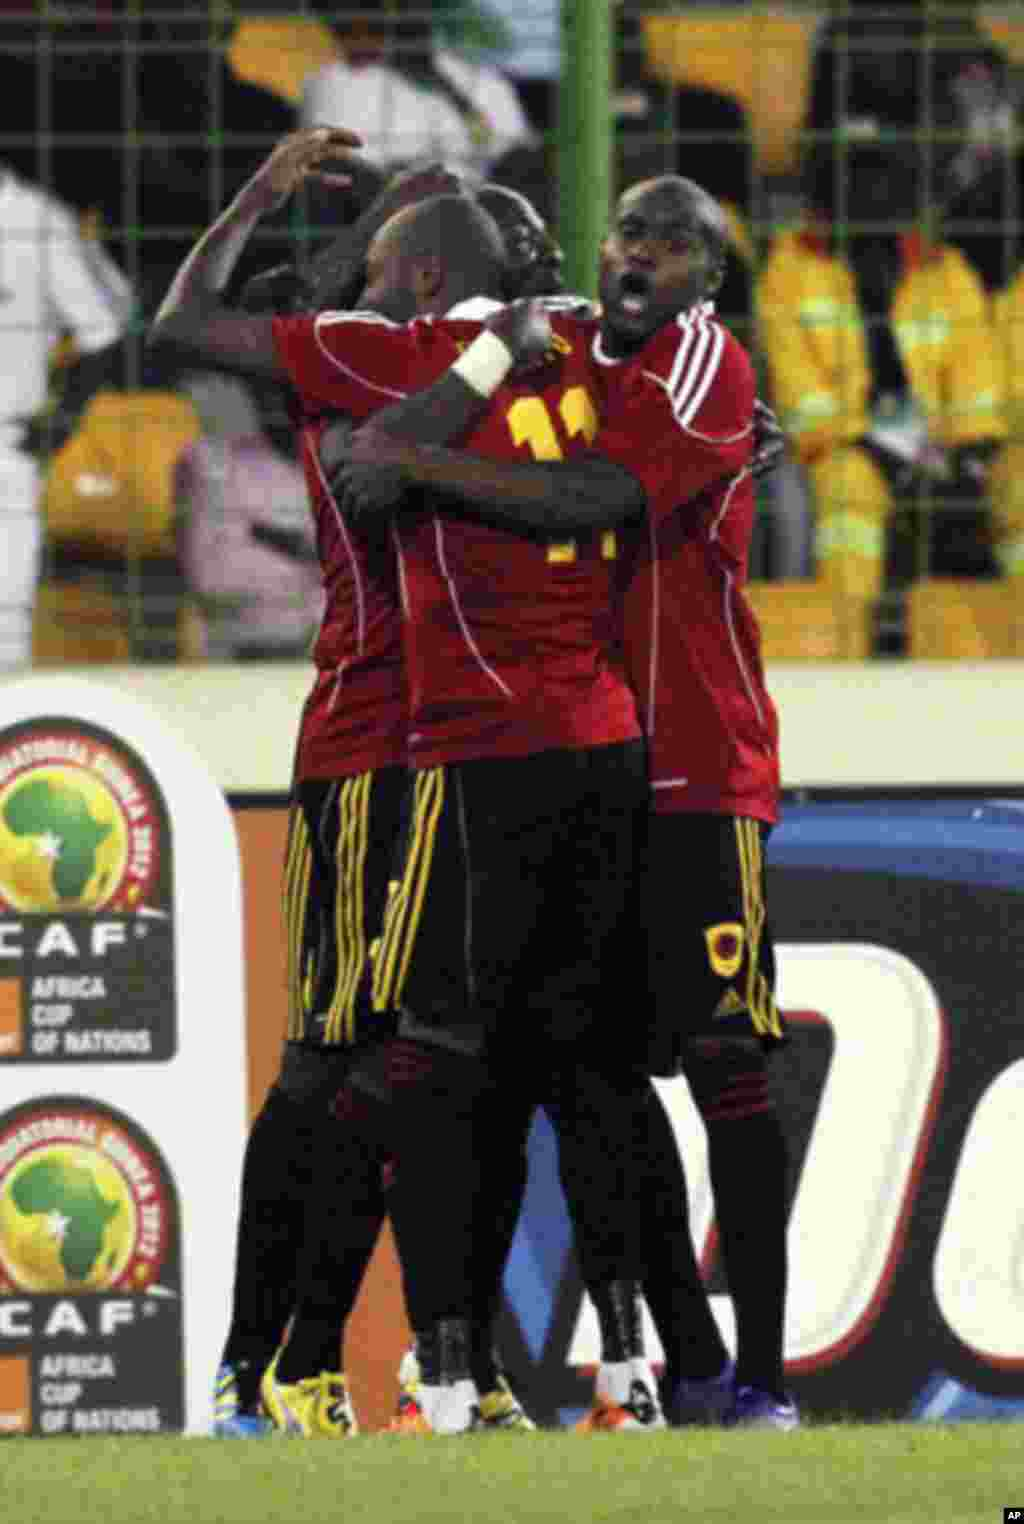 "Angola players celebrate after scoring against Burkina Faso during their African Nations Cup soccer match at Estadio de Malabo ""Malabo Stadium"", in Malabo January 22, 2012. REUTERS/Luc Gnago."